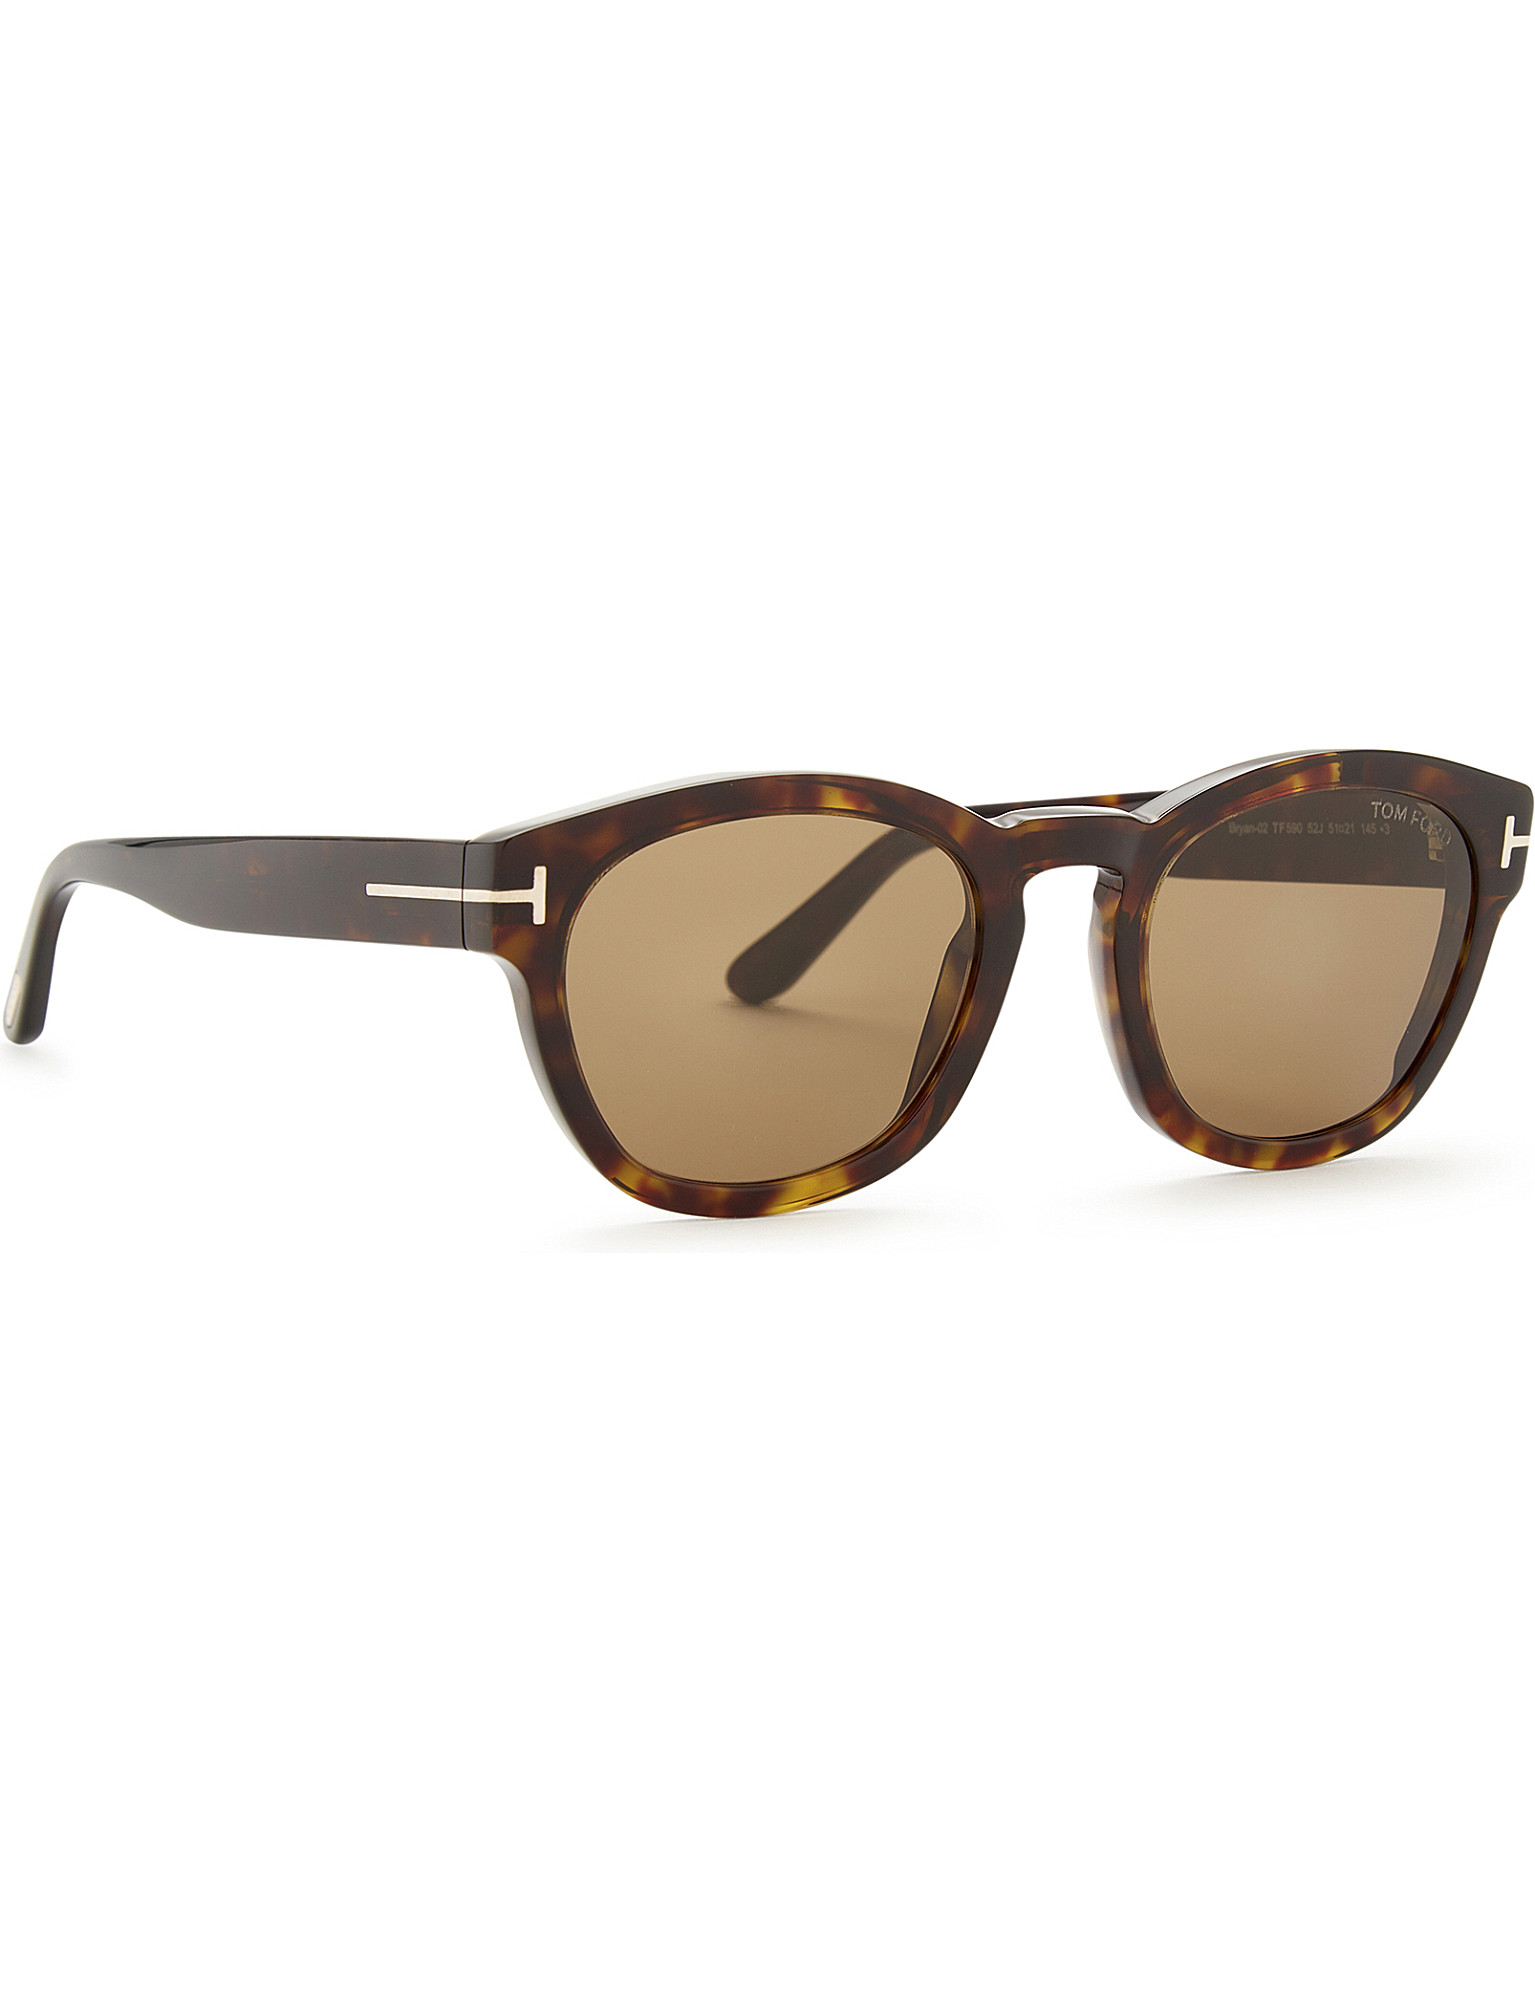 06dc17ca7777d ... Tf590 Bryan square-frame sunglasses zoom ...